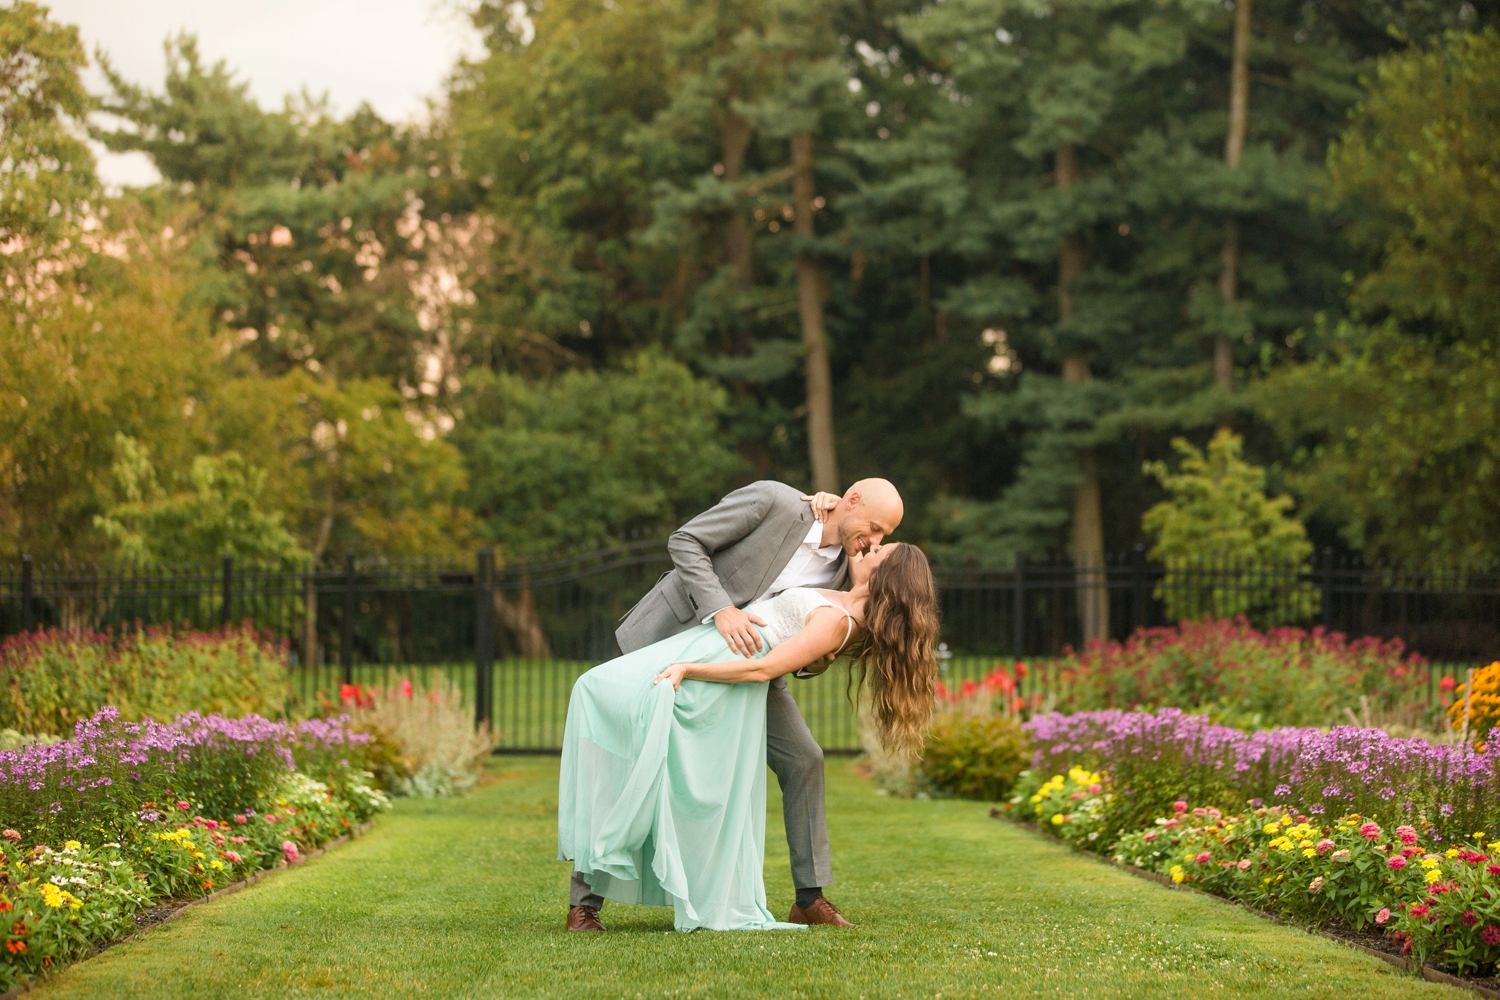 hartwood acres engagement photos, pittsburgh wedding photographer, pittsburgh engagement photographer